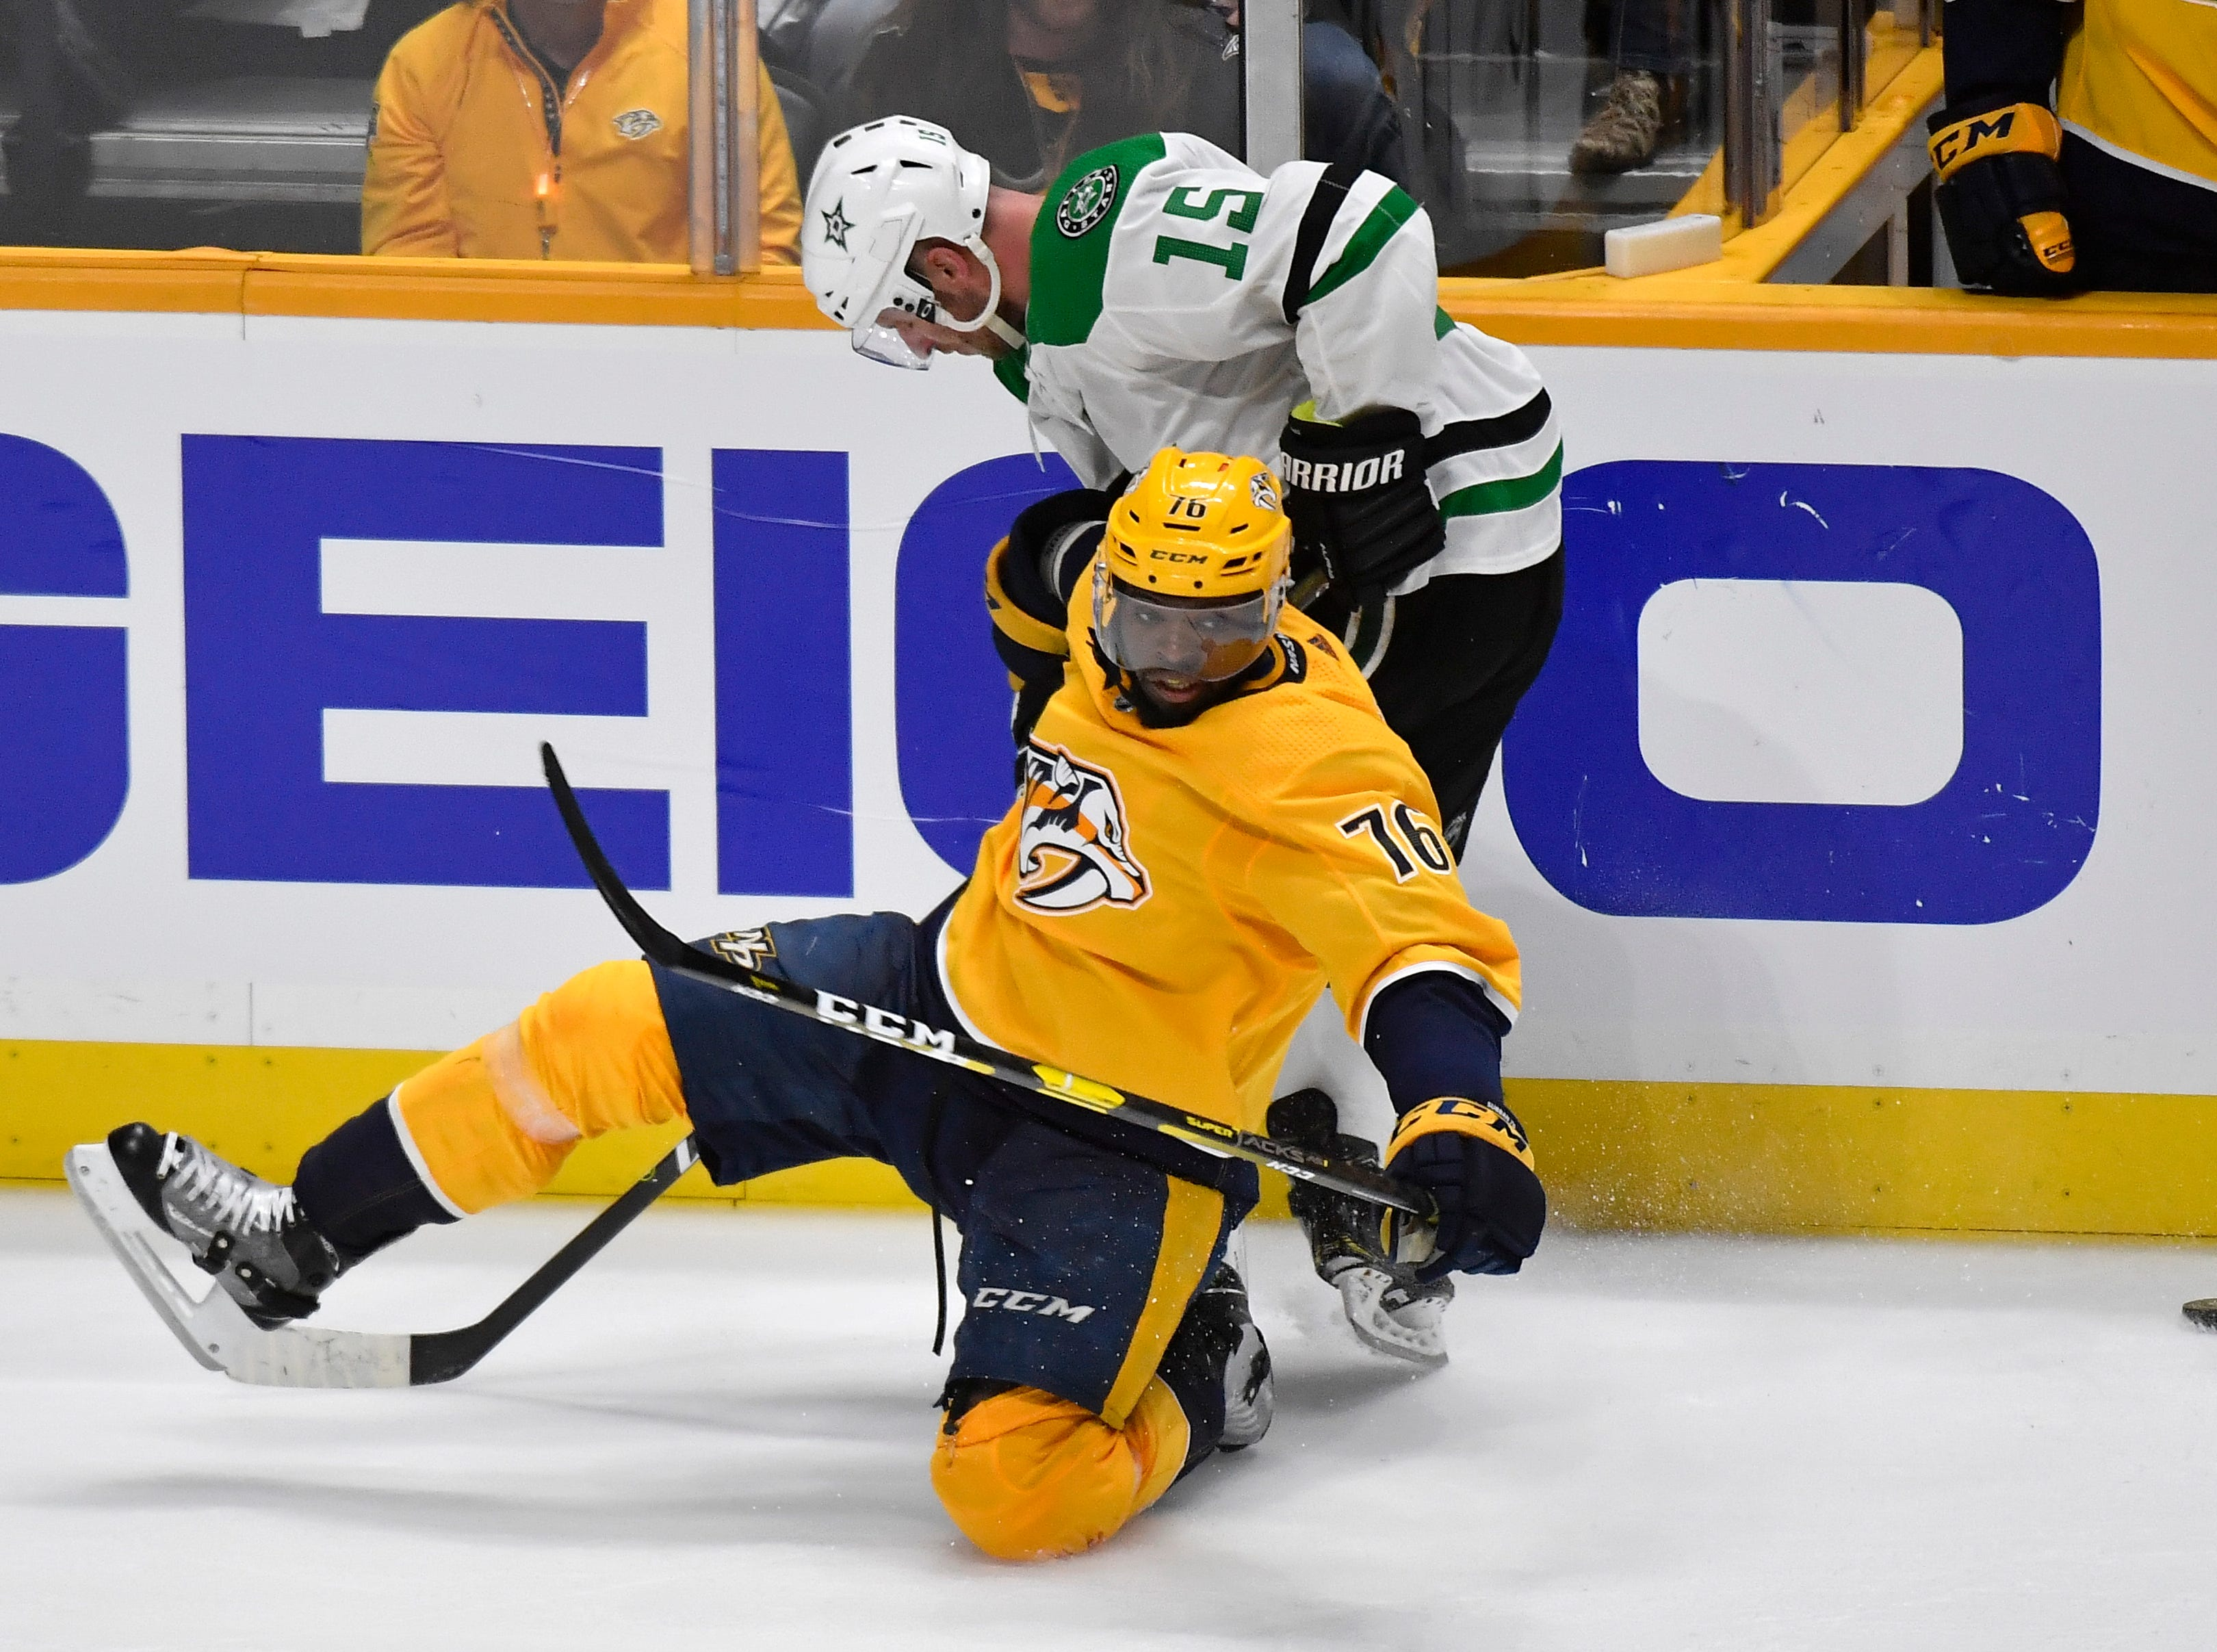 Nashville Predators defenseman P.K. Subban (76) and Dallas Stars left wing Blake Comeau (15) battle for the puck during the third period of the divisional semifinal game at Bridgestone Arena in Nashville, Tenn., Wednesday, April 10, 2019.